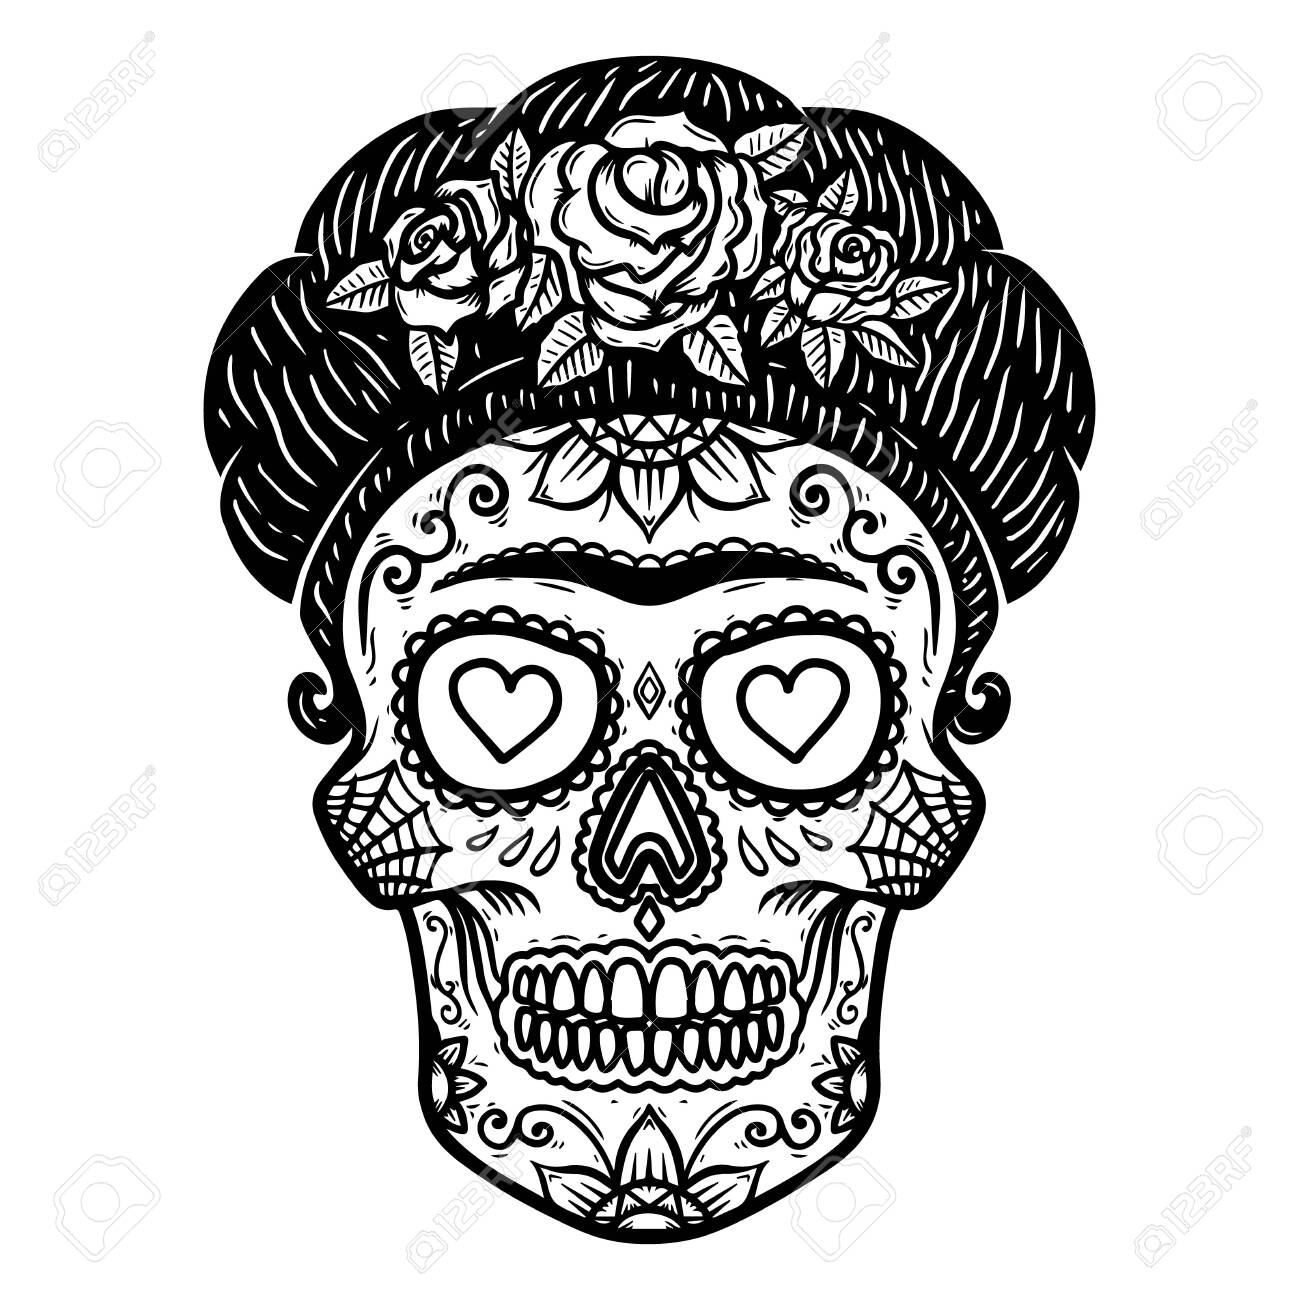 Vintage mexican woman skull isolated on white background. Design element for label, sign, poster. Vector illustration - 144753254